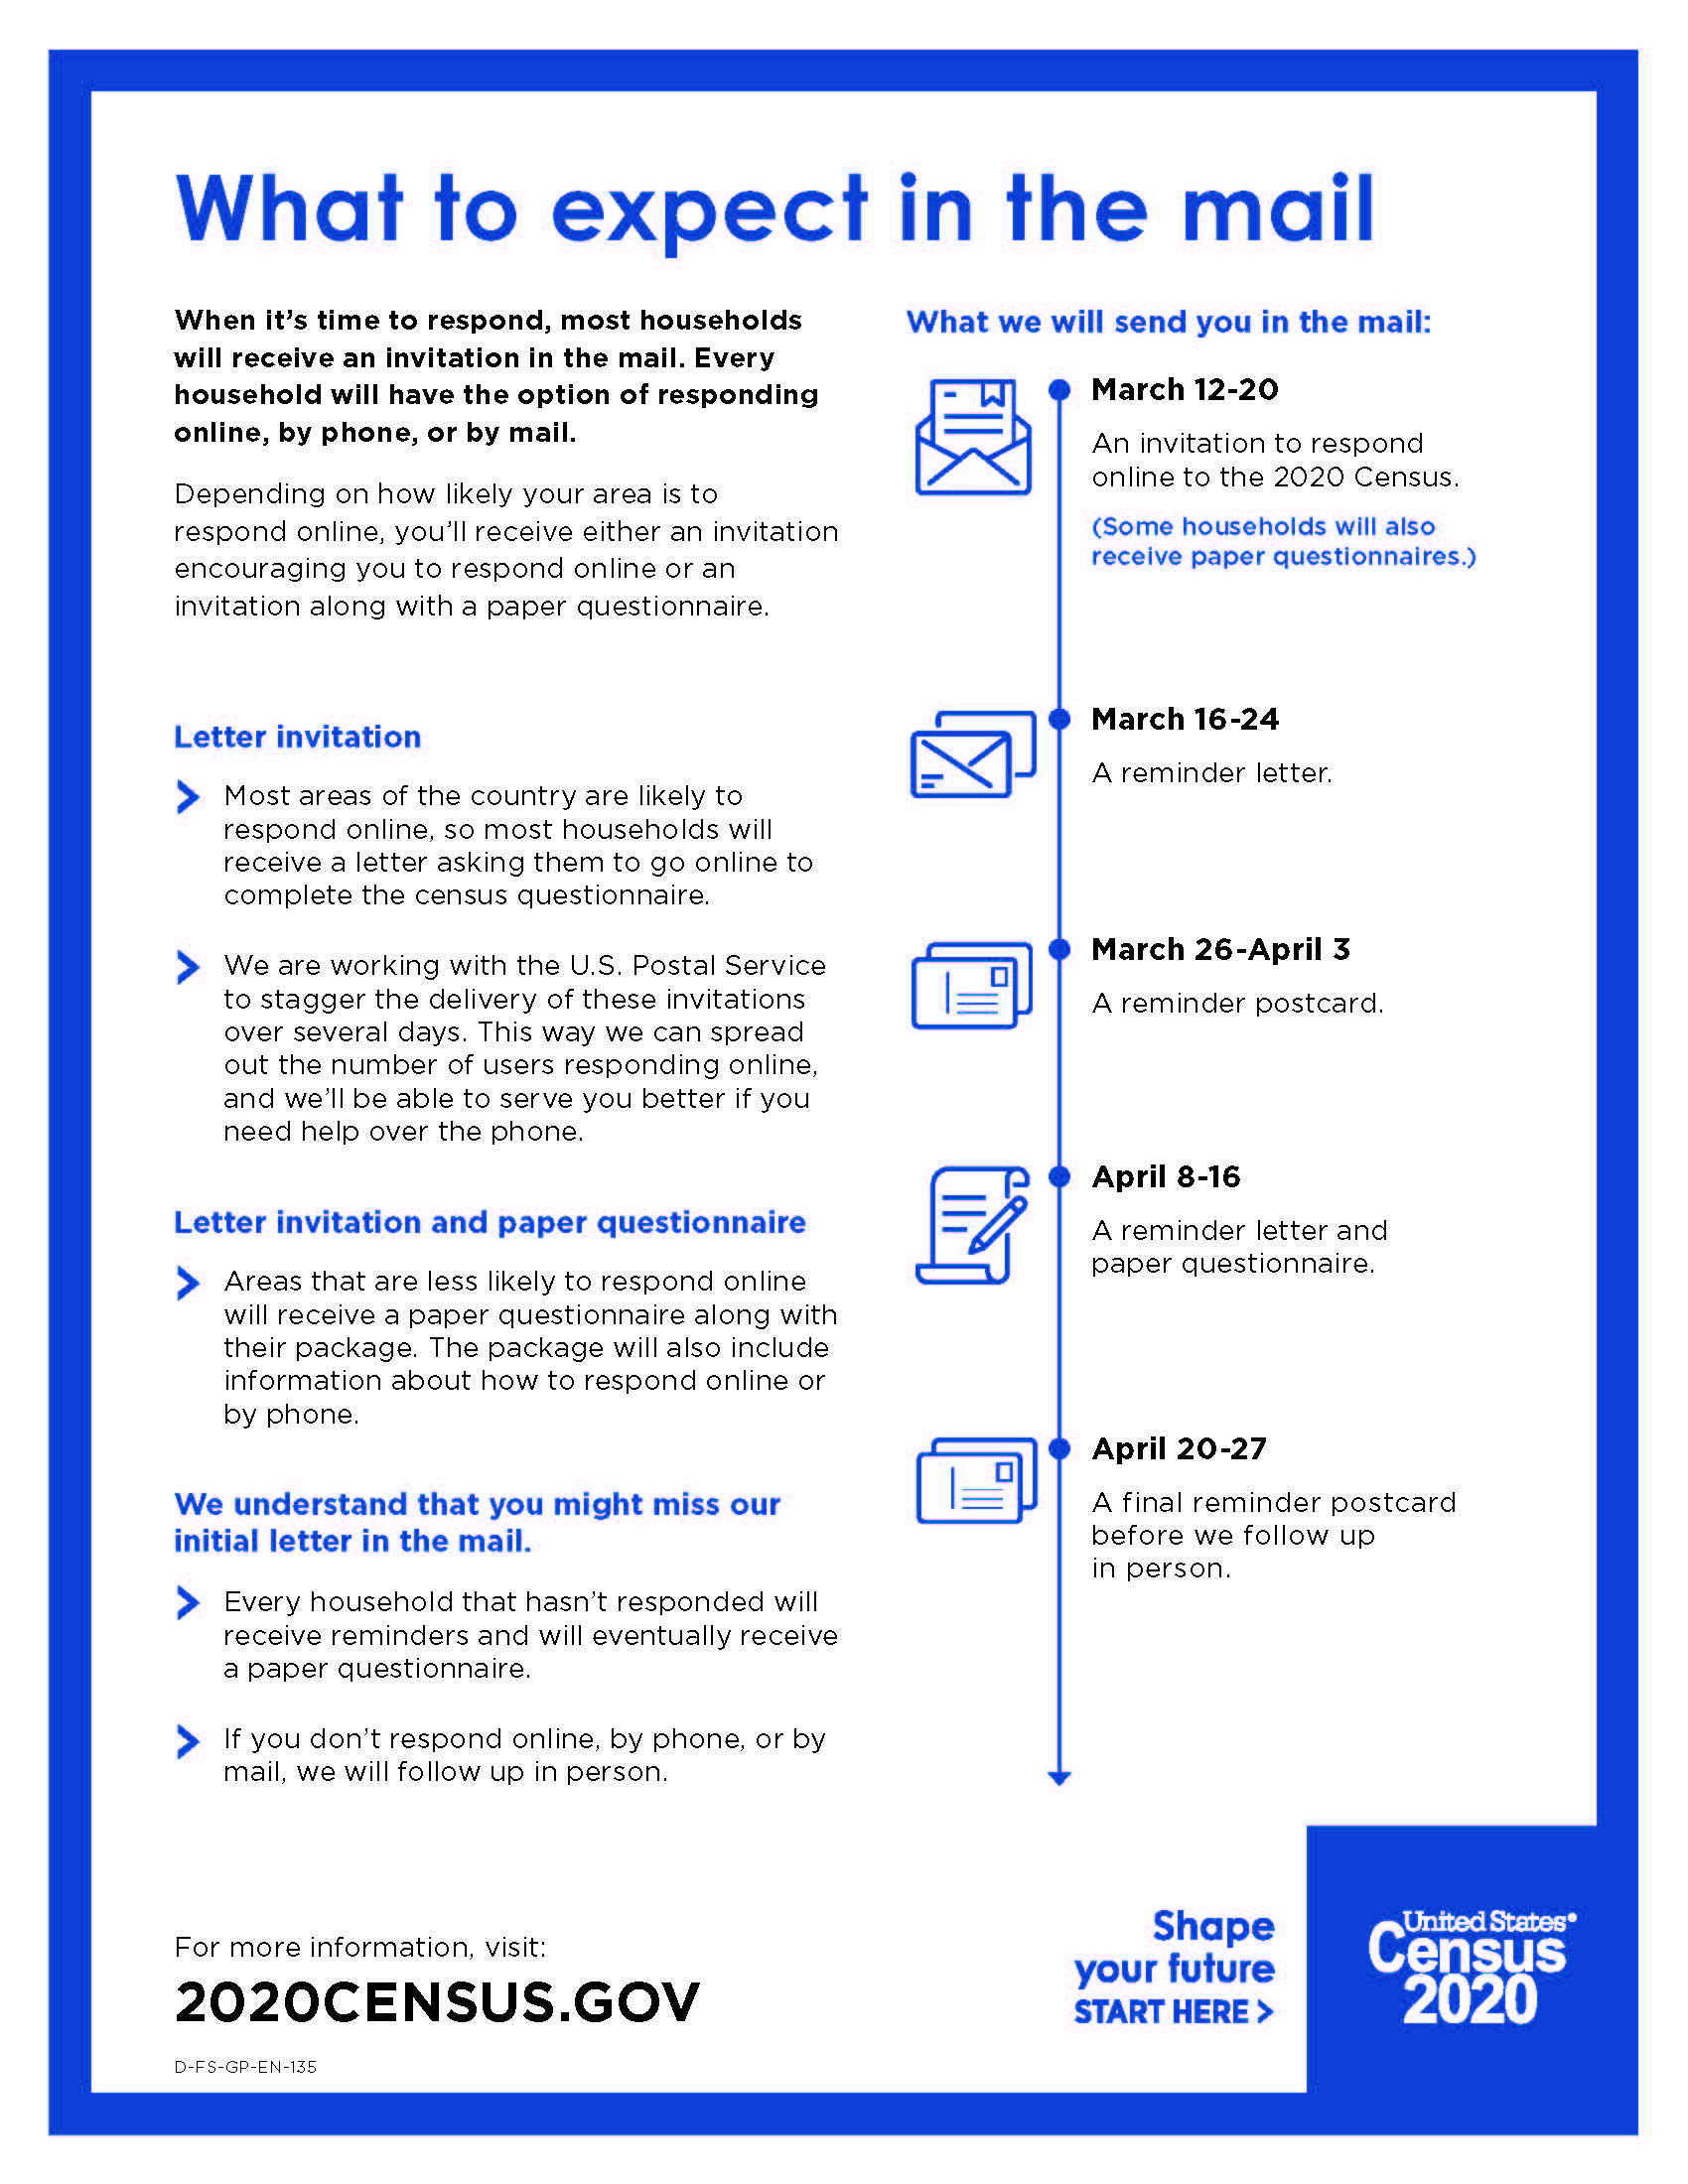 Handout About How the 2020 Census Invites Everyone to Respond Timeline